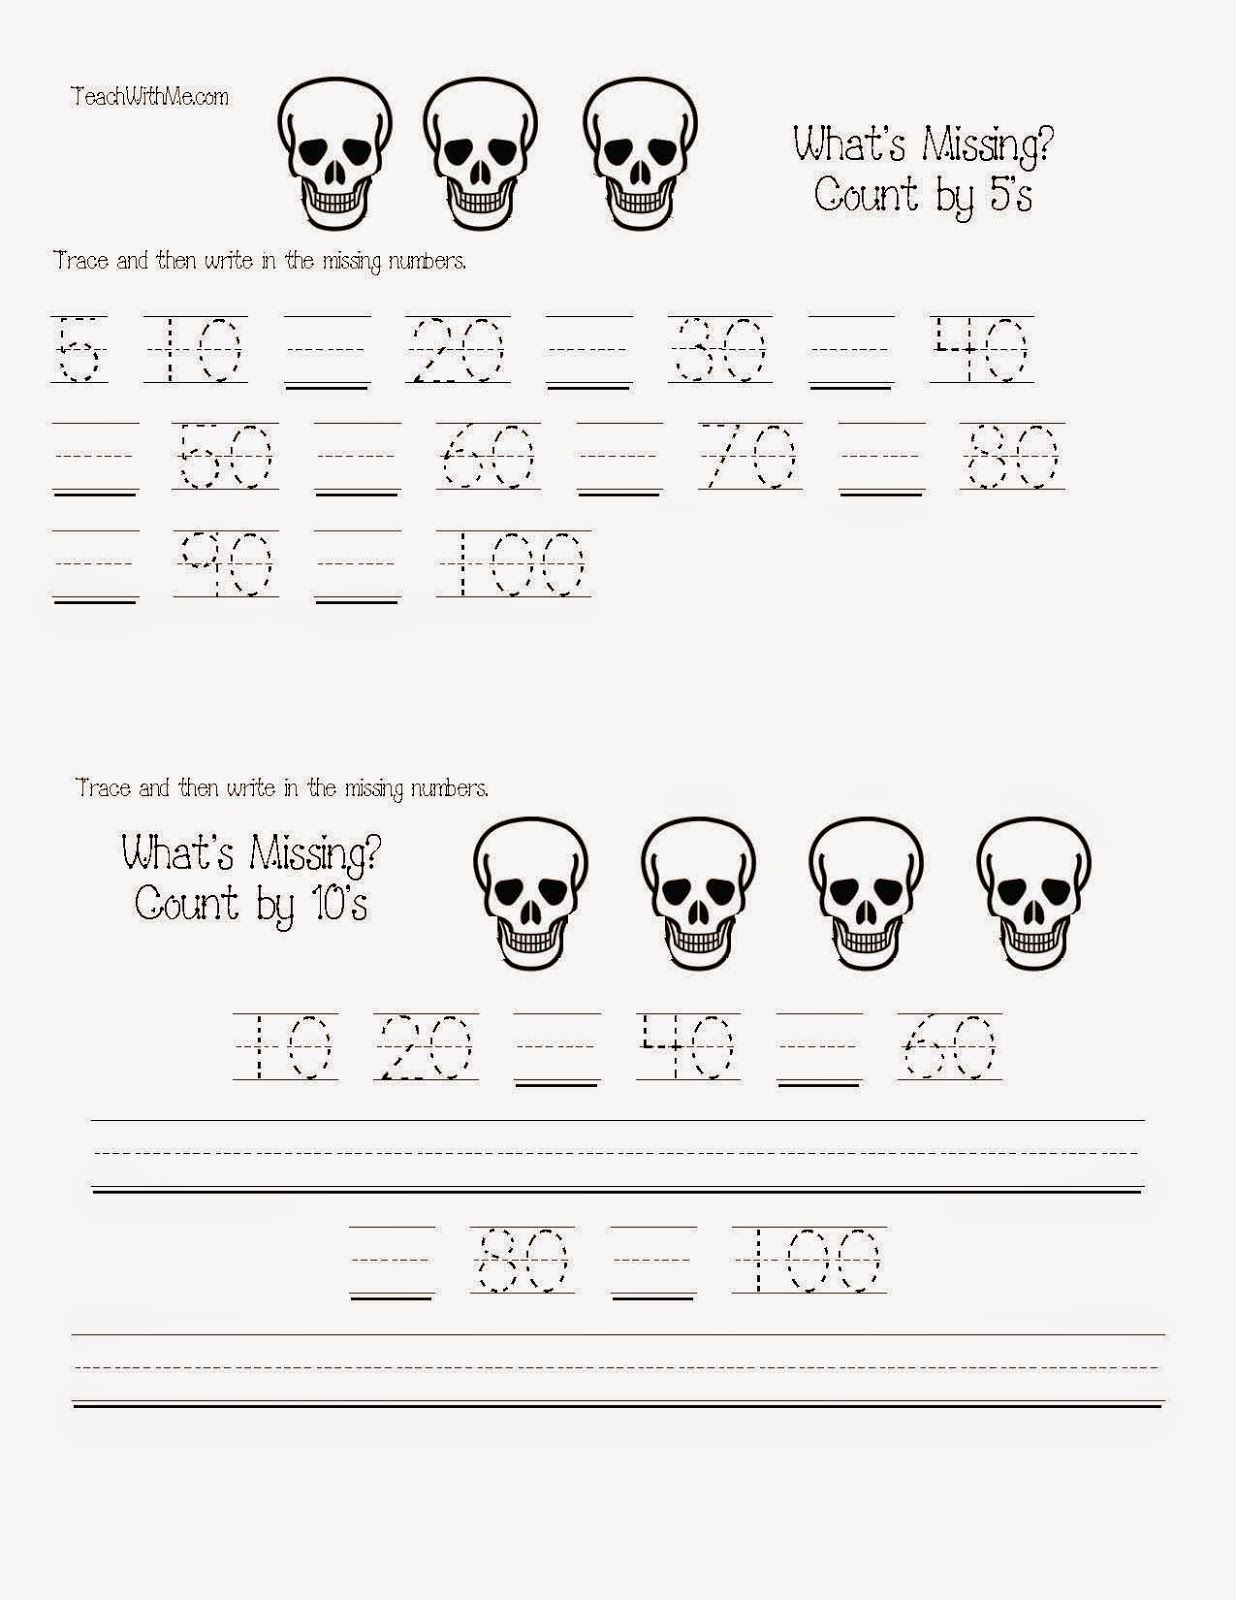 Common Core Skeleton Math Packet Math Packets Classroom Freebies Common Core [ 1600 x 1236 Pixel ]